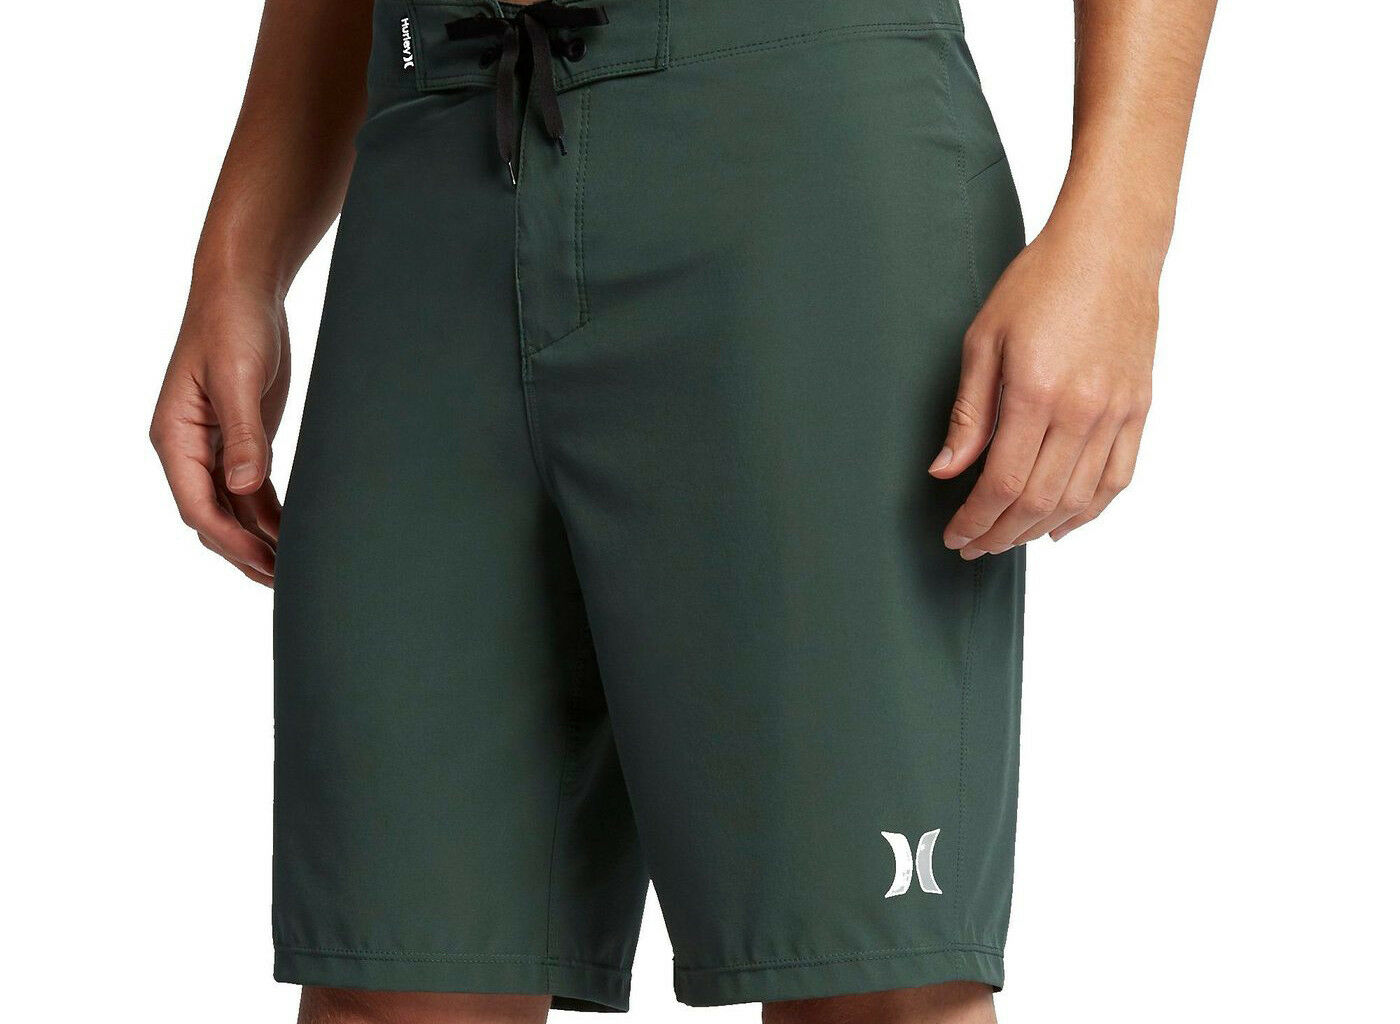 Hurley One and Only Boardshort (32) Vintage Green